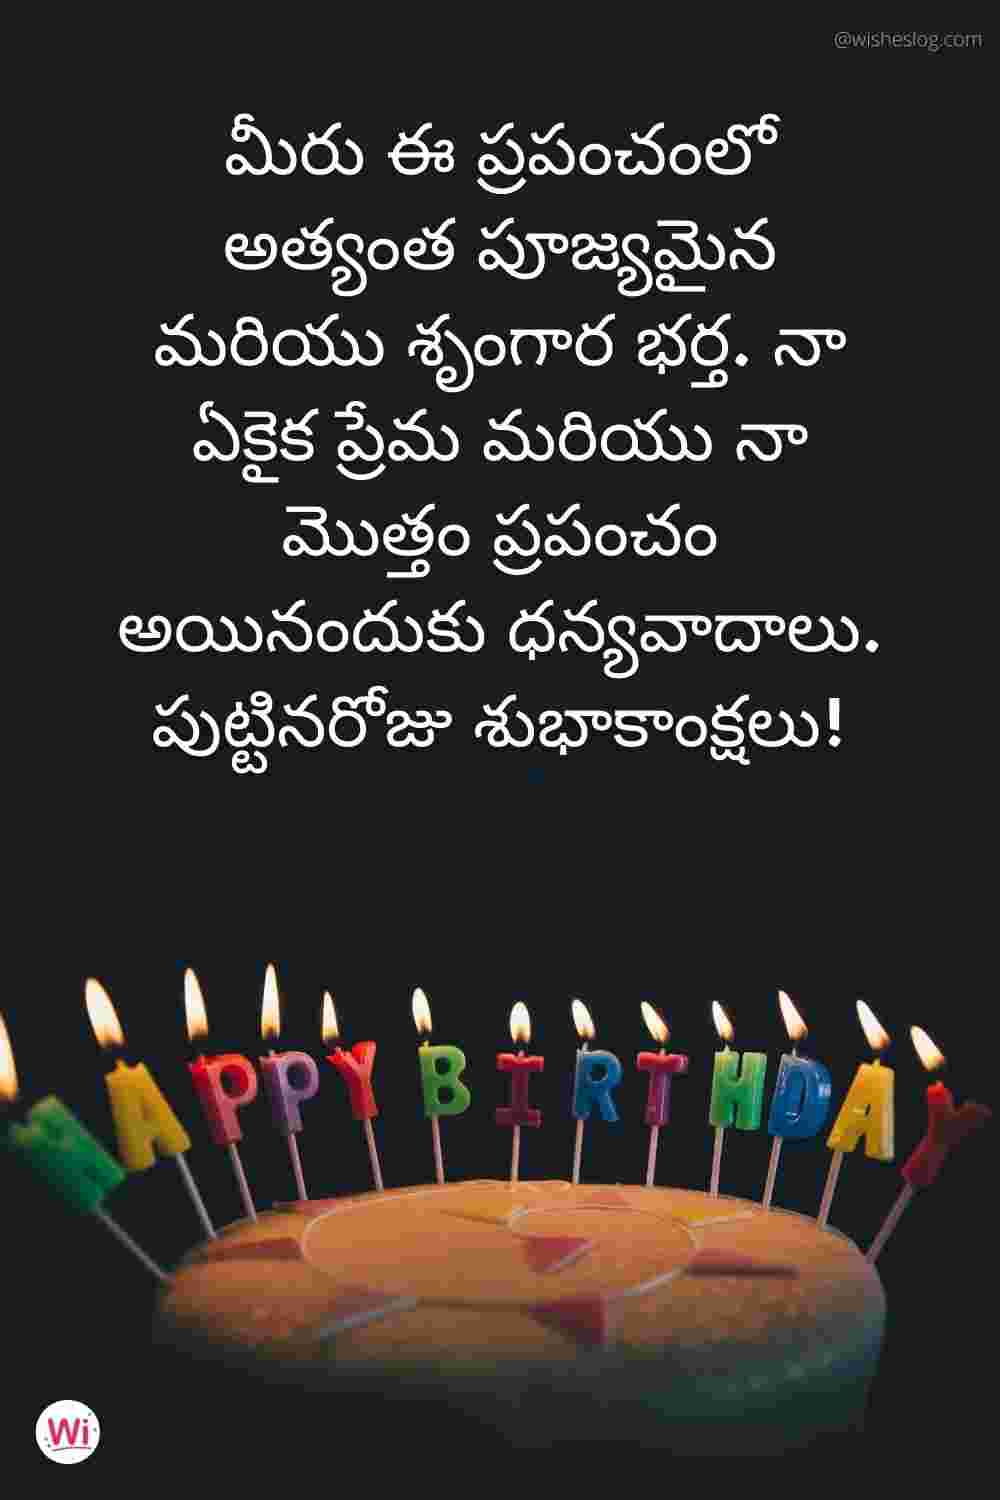 birthday wishes quotes in telugu for husband